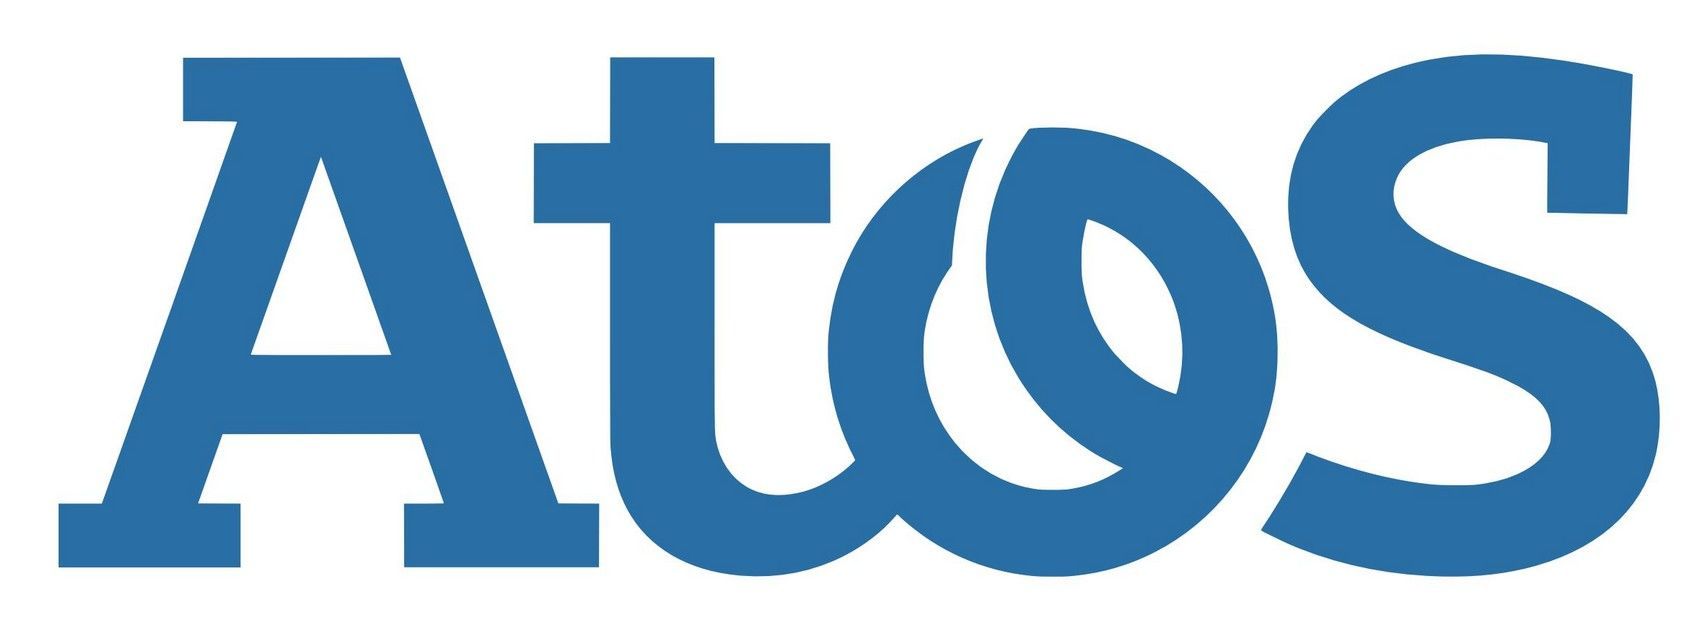 Atos Logo [EPS File] Vector EPS Free Download, Logo, Icons, Brand Emblems